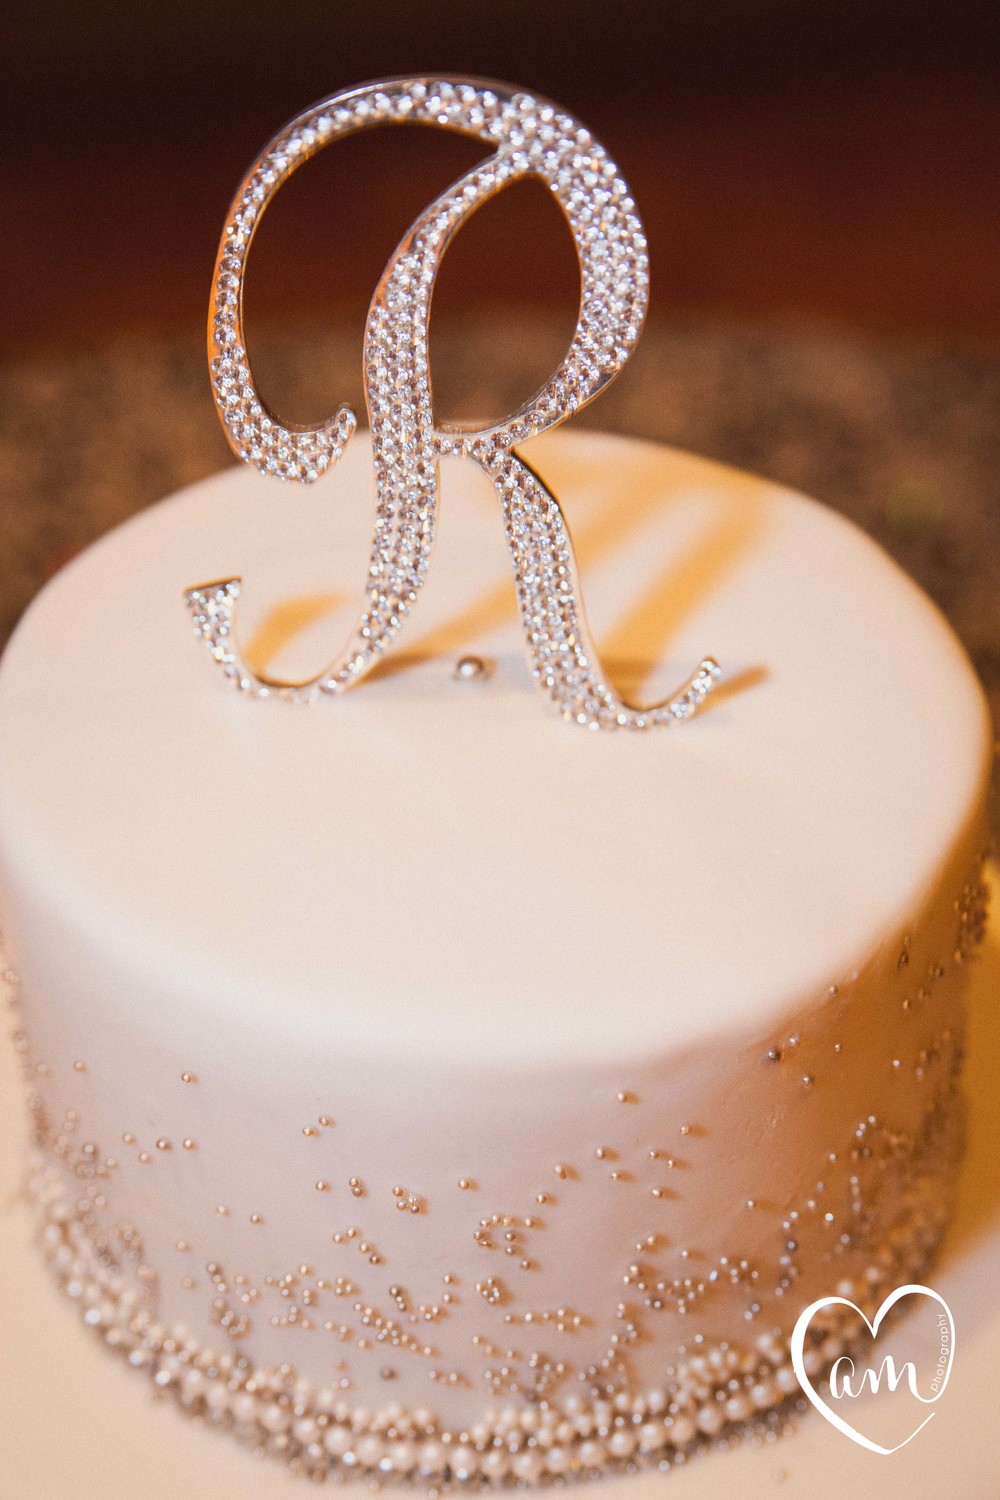 Cake Topper Photo by Amanda Mejias Photography: Destination Wedding Photographer.